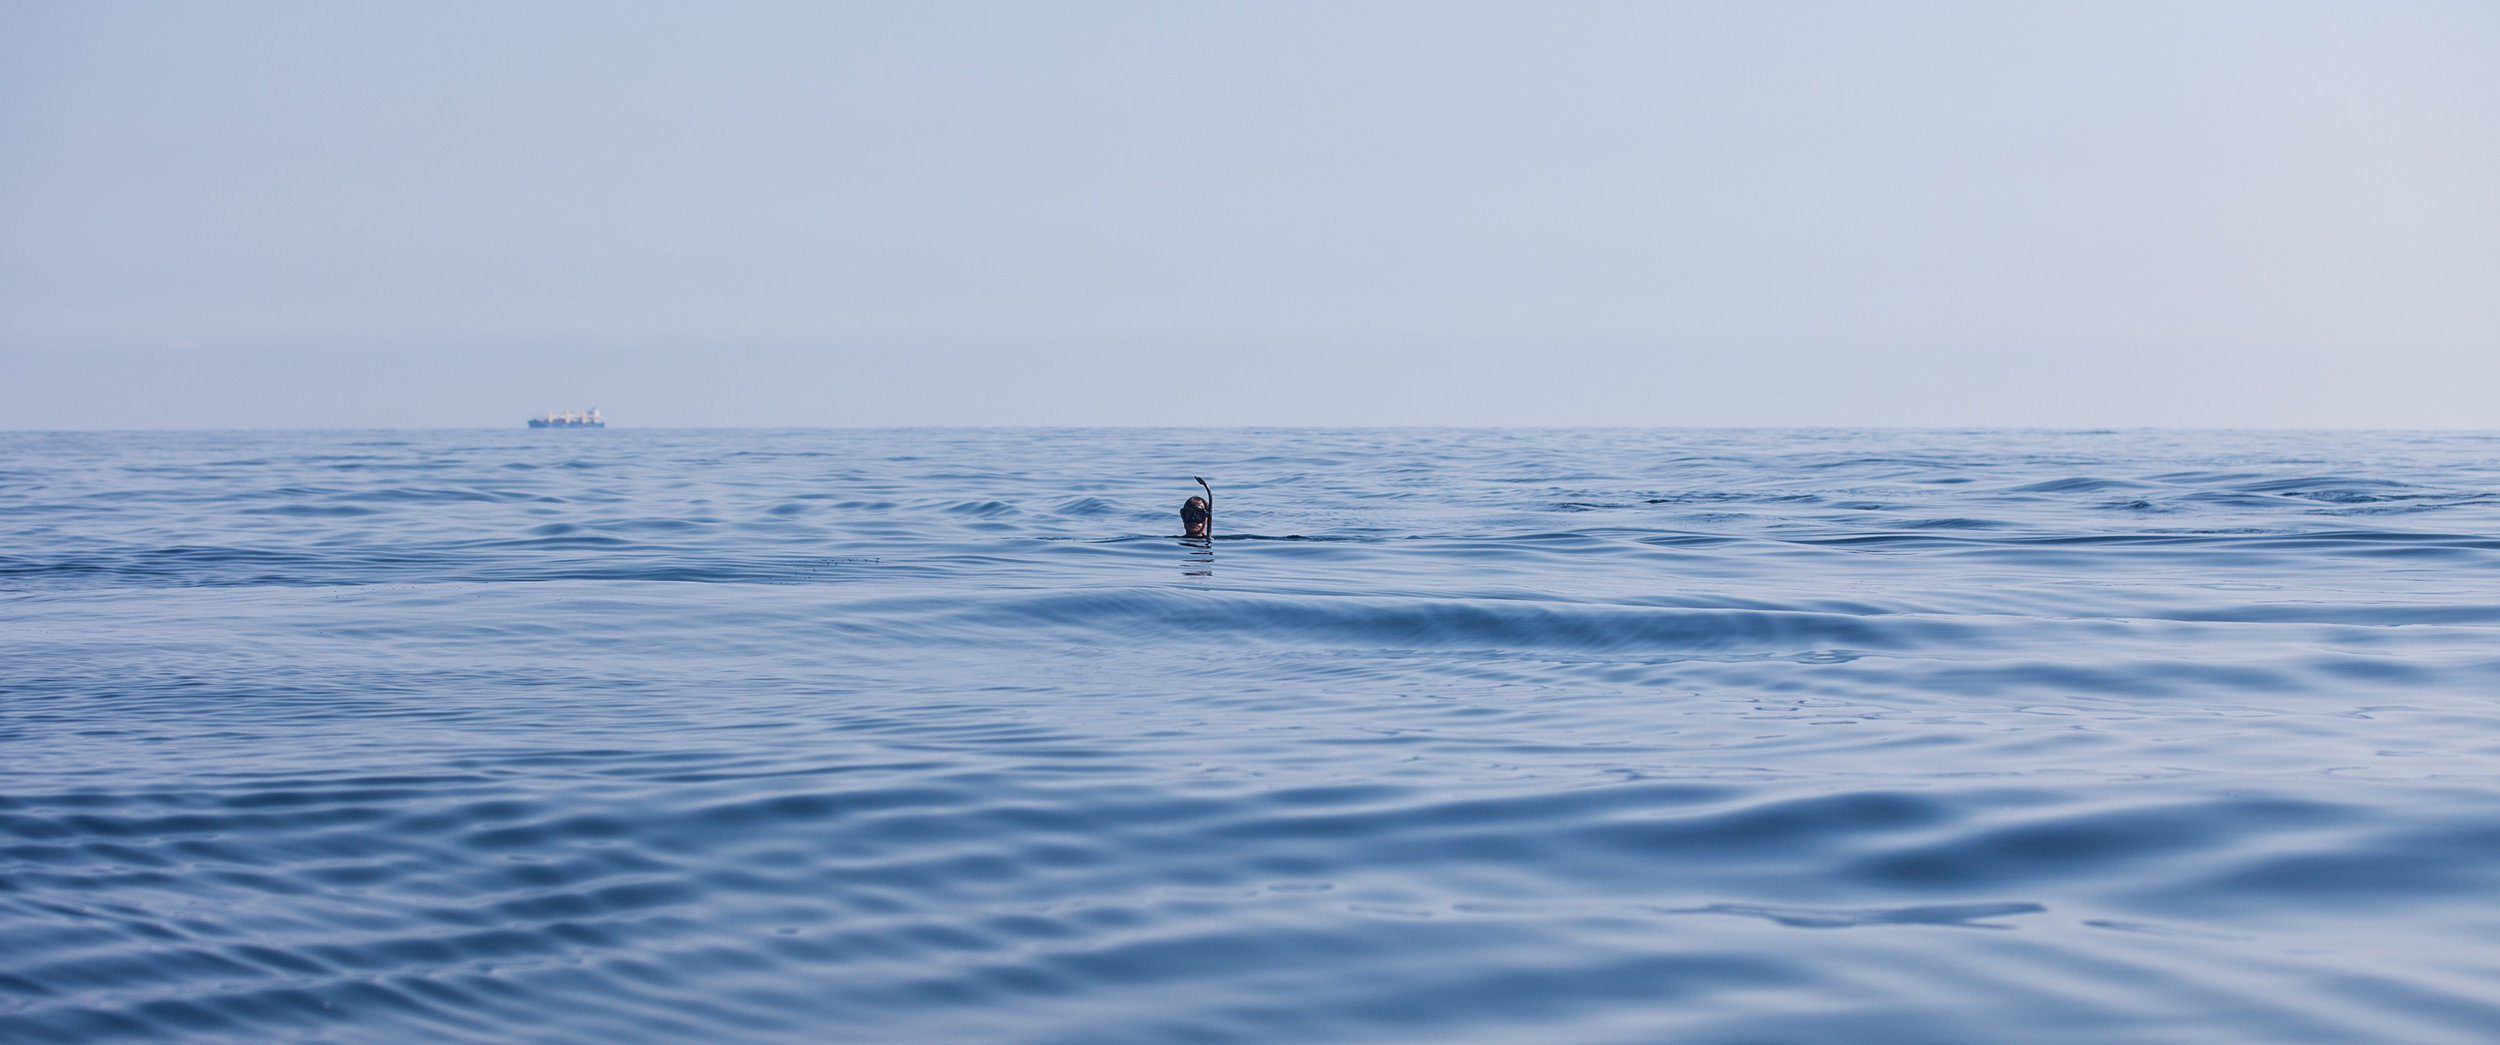 Co-Director James Sherwood swimming out on the high seas in the Pelagos Sanctuary. If you look closely, you can see a cargo ship in the distance.